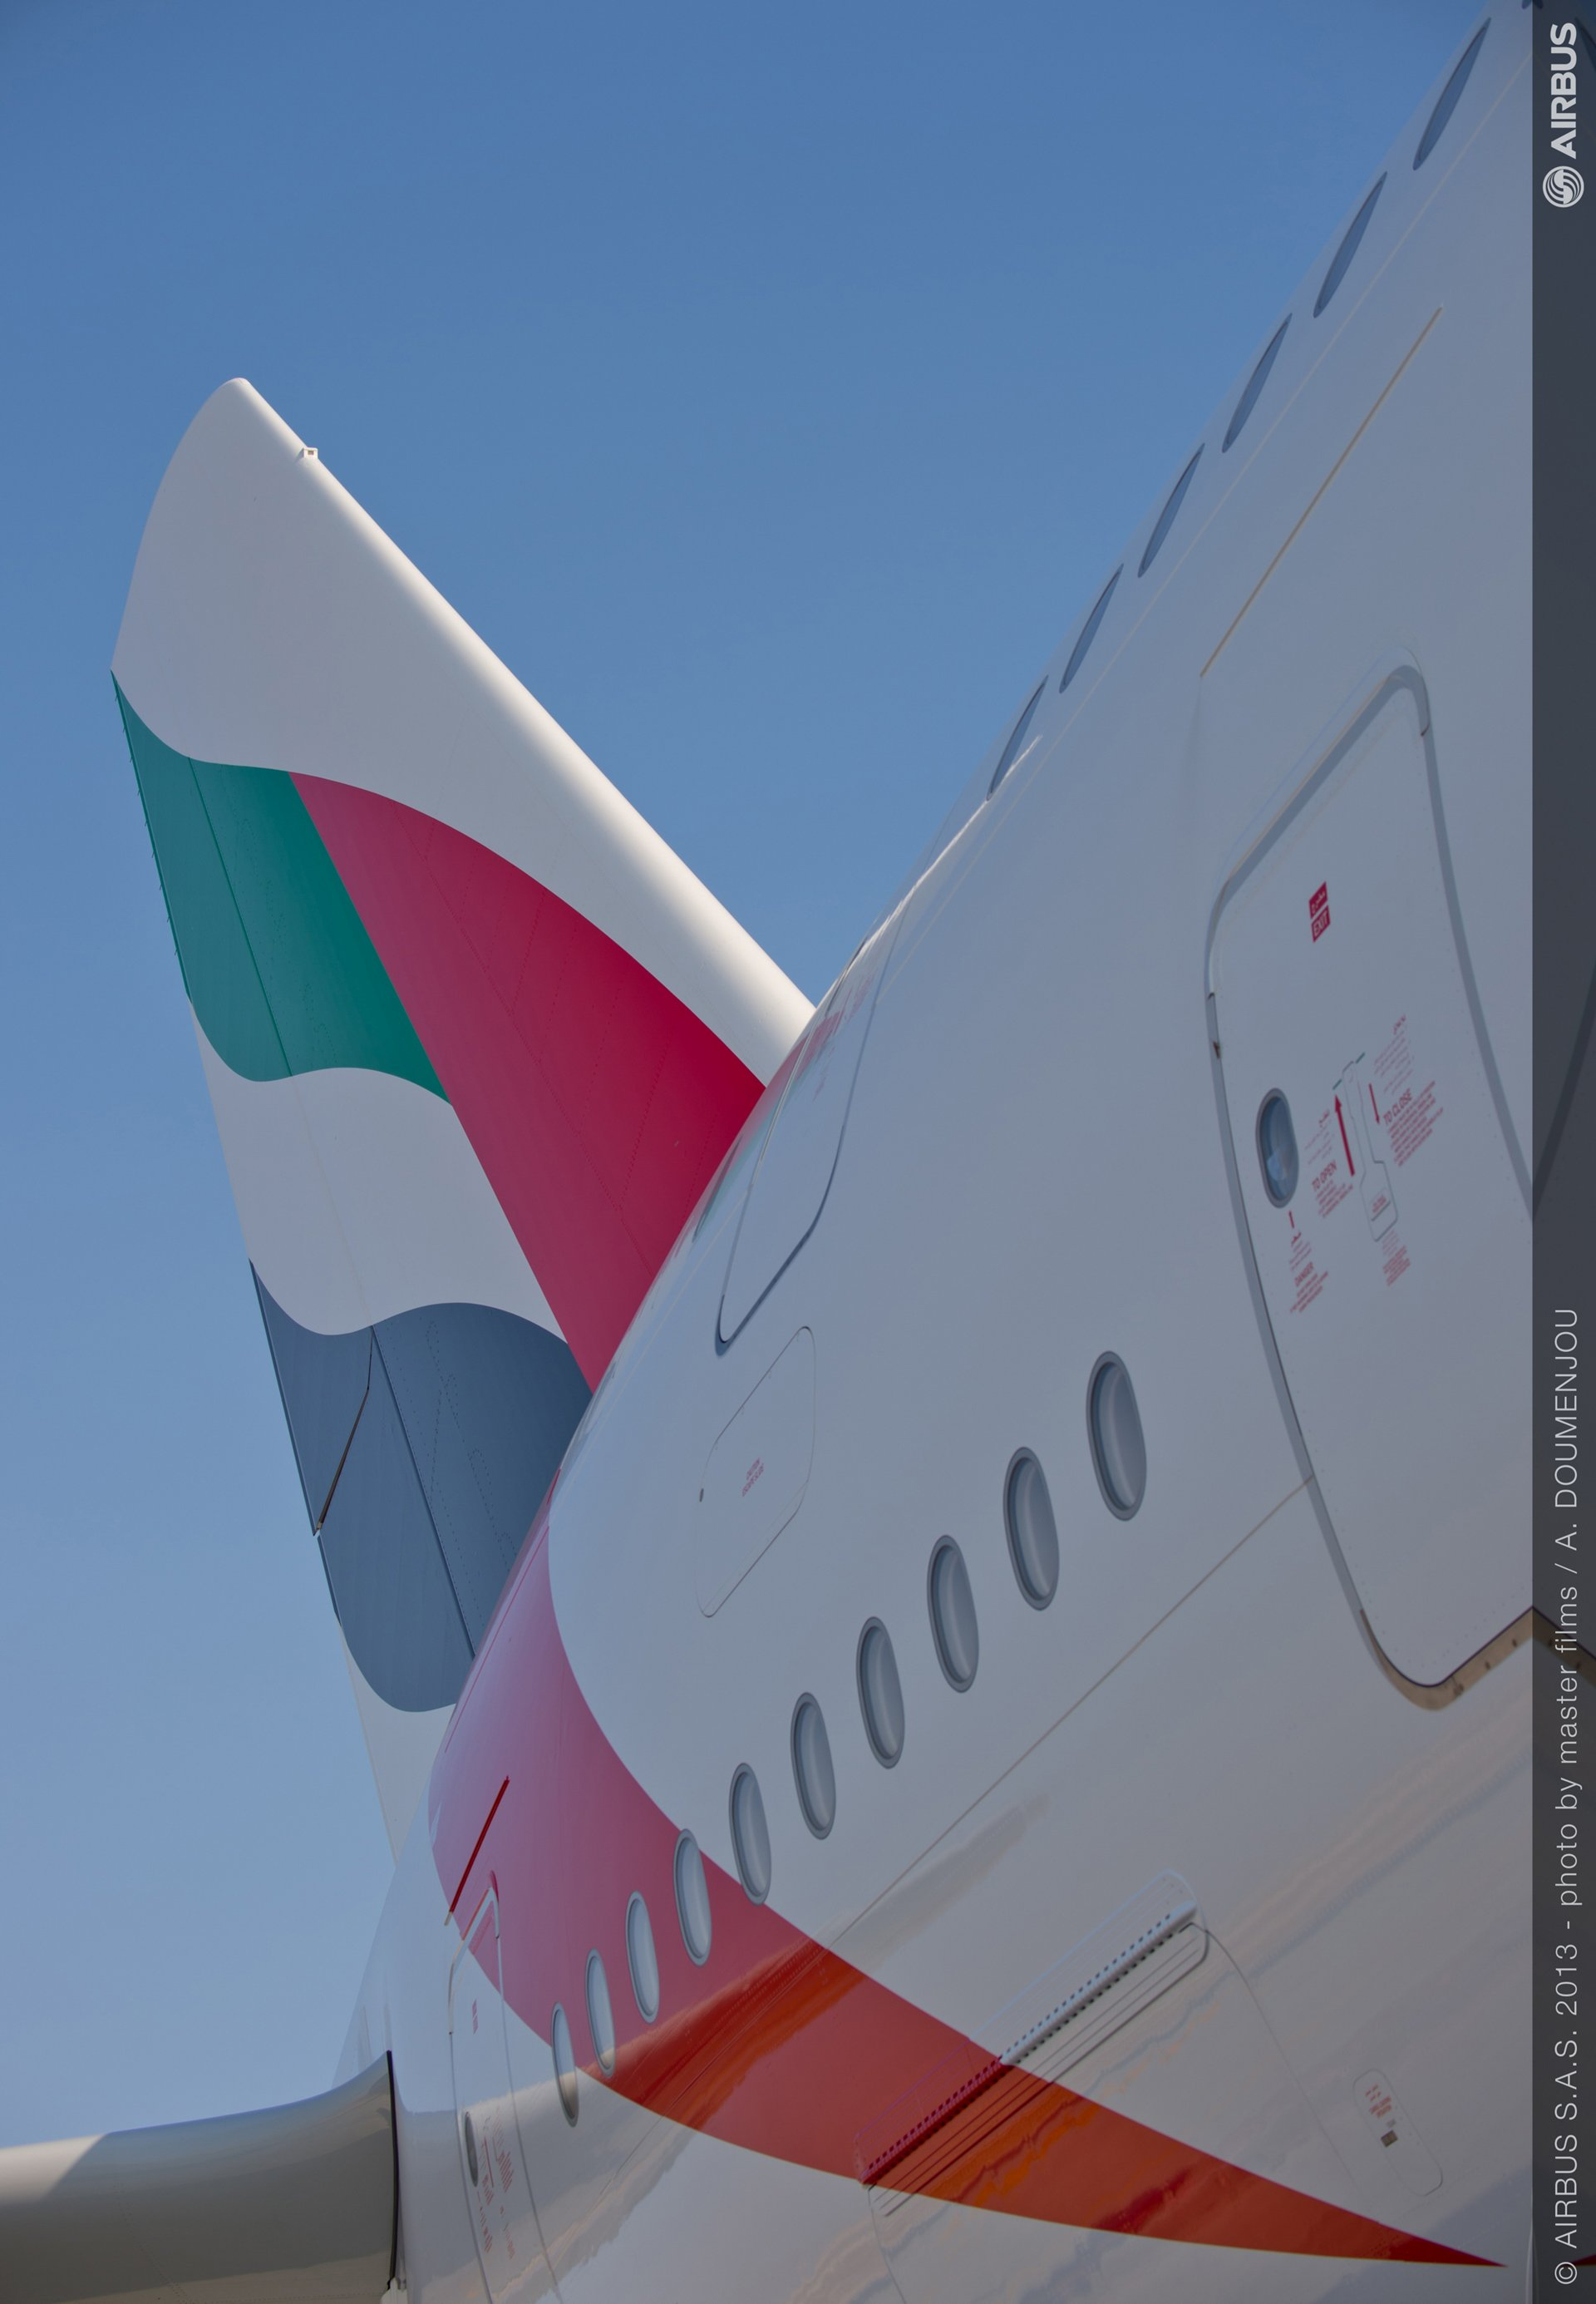 Day one ambiance 04 A380 emirates